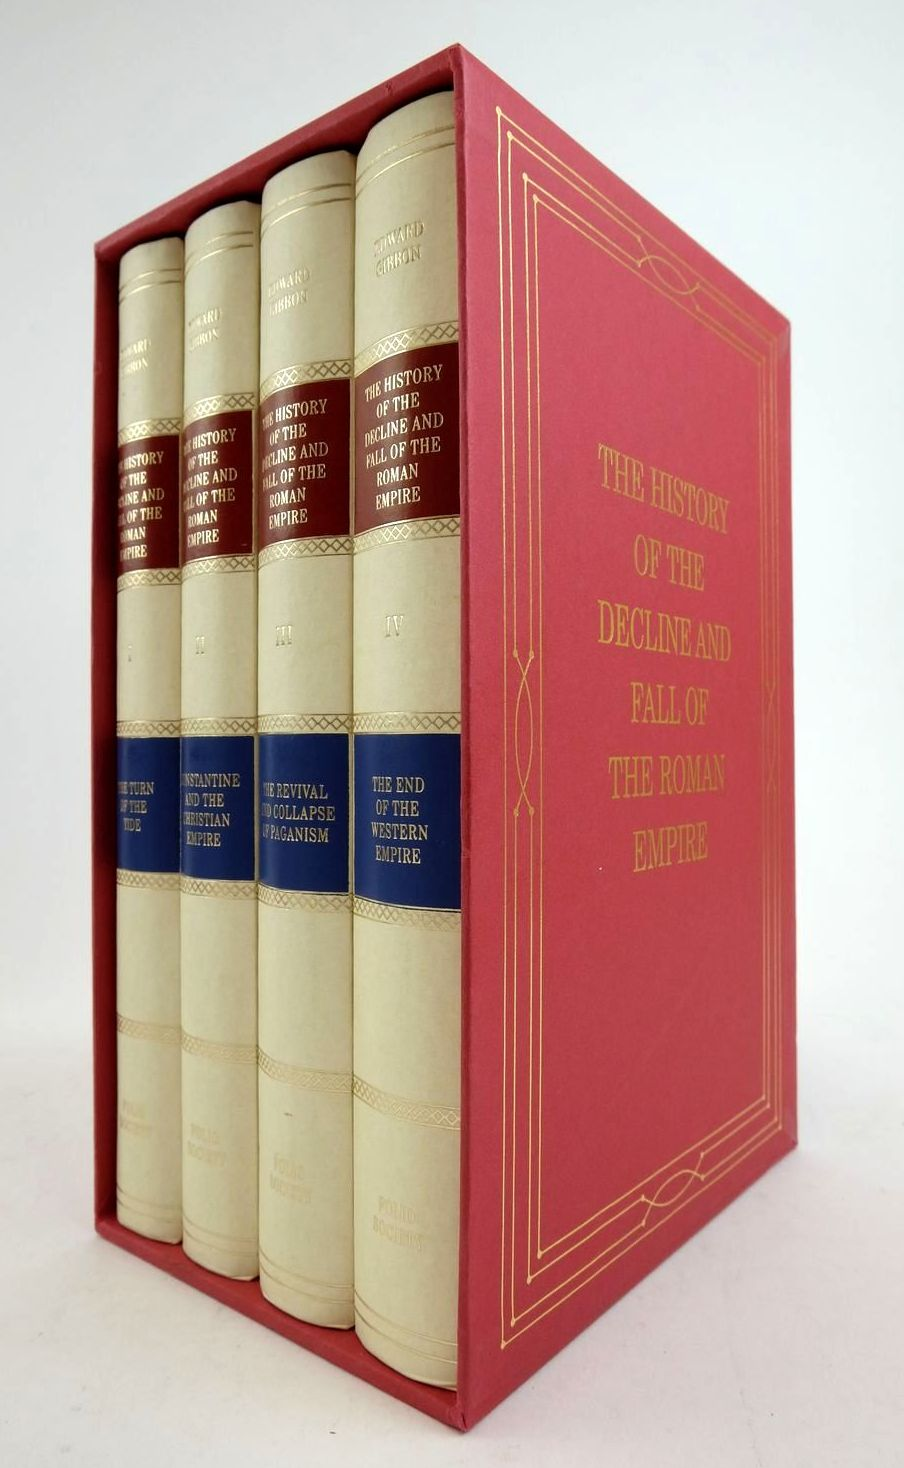 Photo of THE HISTORY OF THE DECLINE AND FALL OF THE ROMAN EMPIRE (VOLUMES I-IV) written by Gibbon, Edward published by Folio Society (STOCK CODE: 1822459)  for sale by Stella & Rose's Books